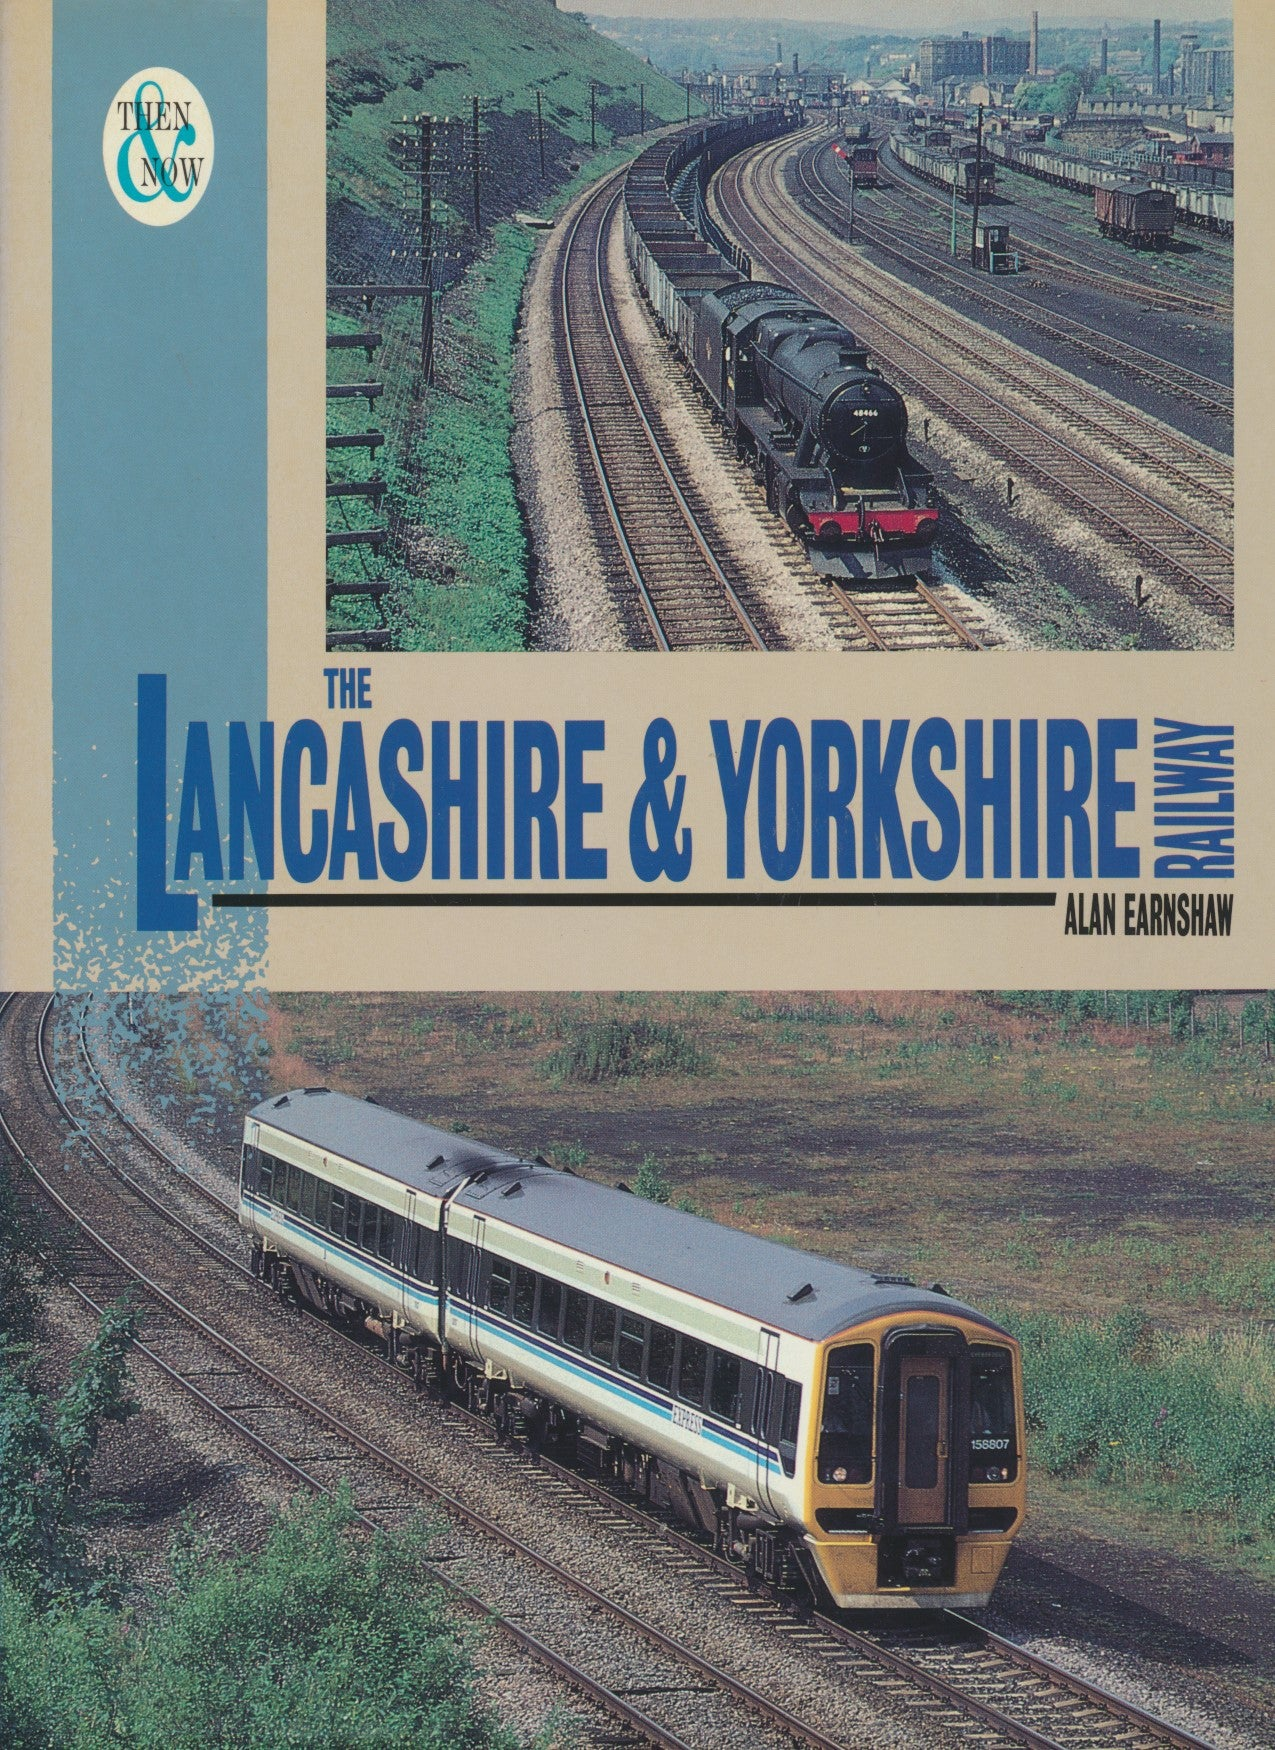 The Lancashire and Yorkshire Railway: Then and Now